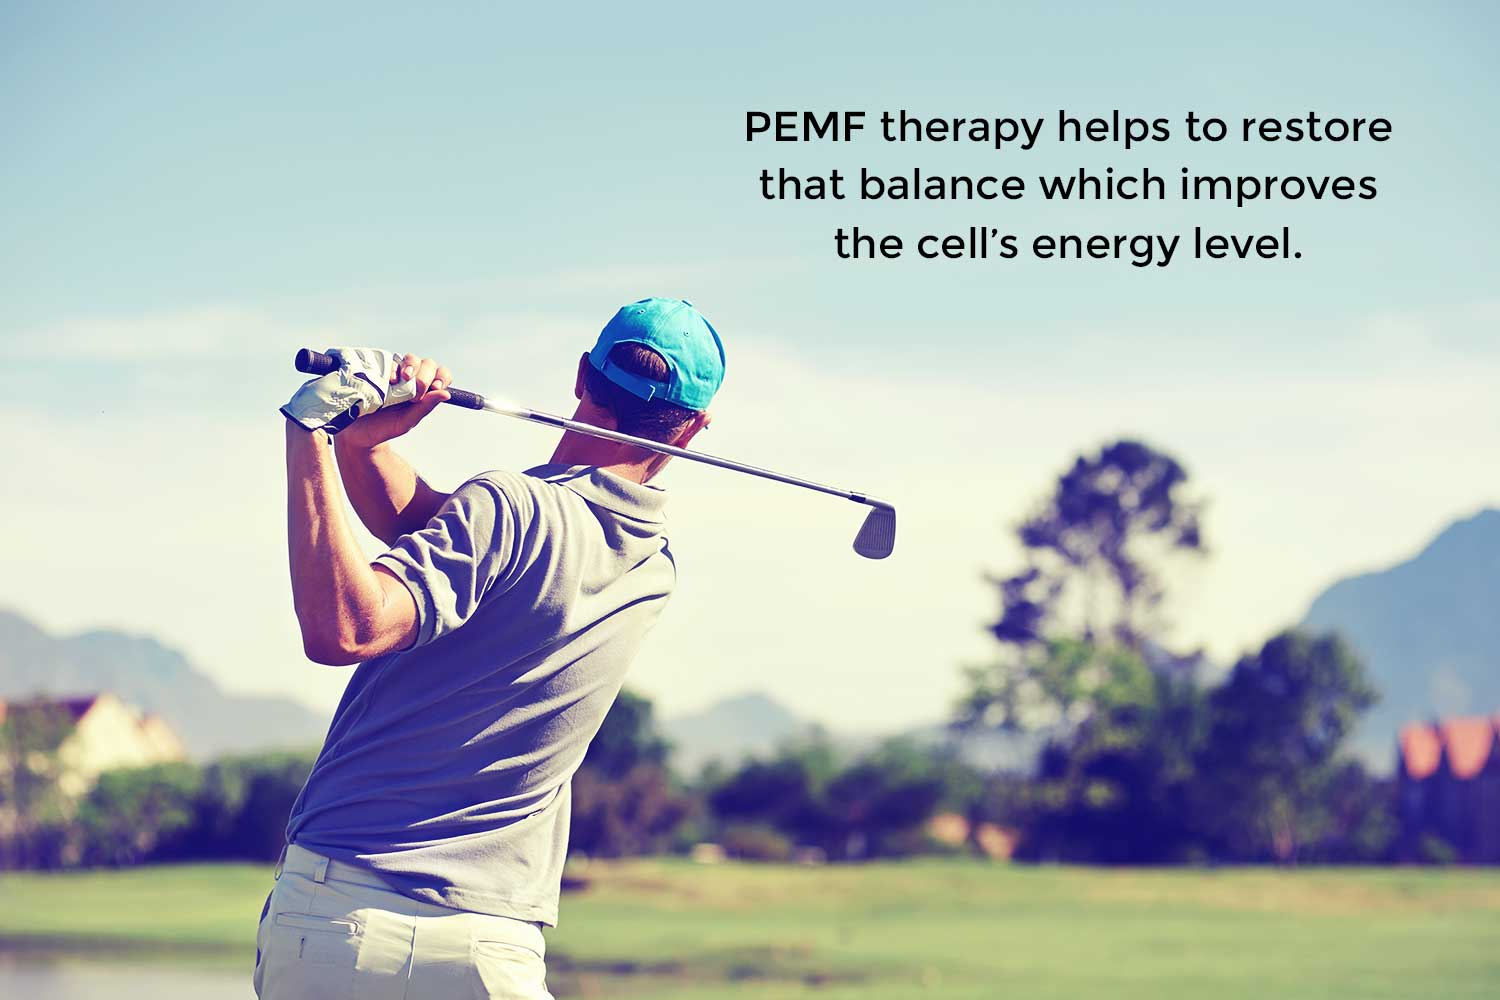 PEMF therapy helps to restore that balance which improves the cell's energy level.